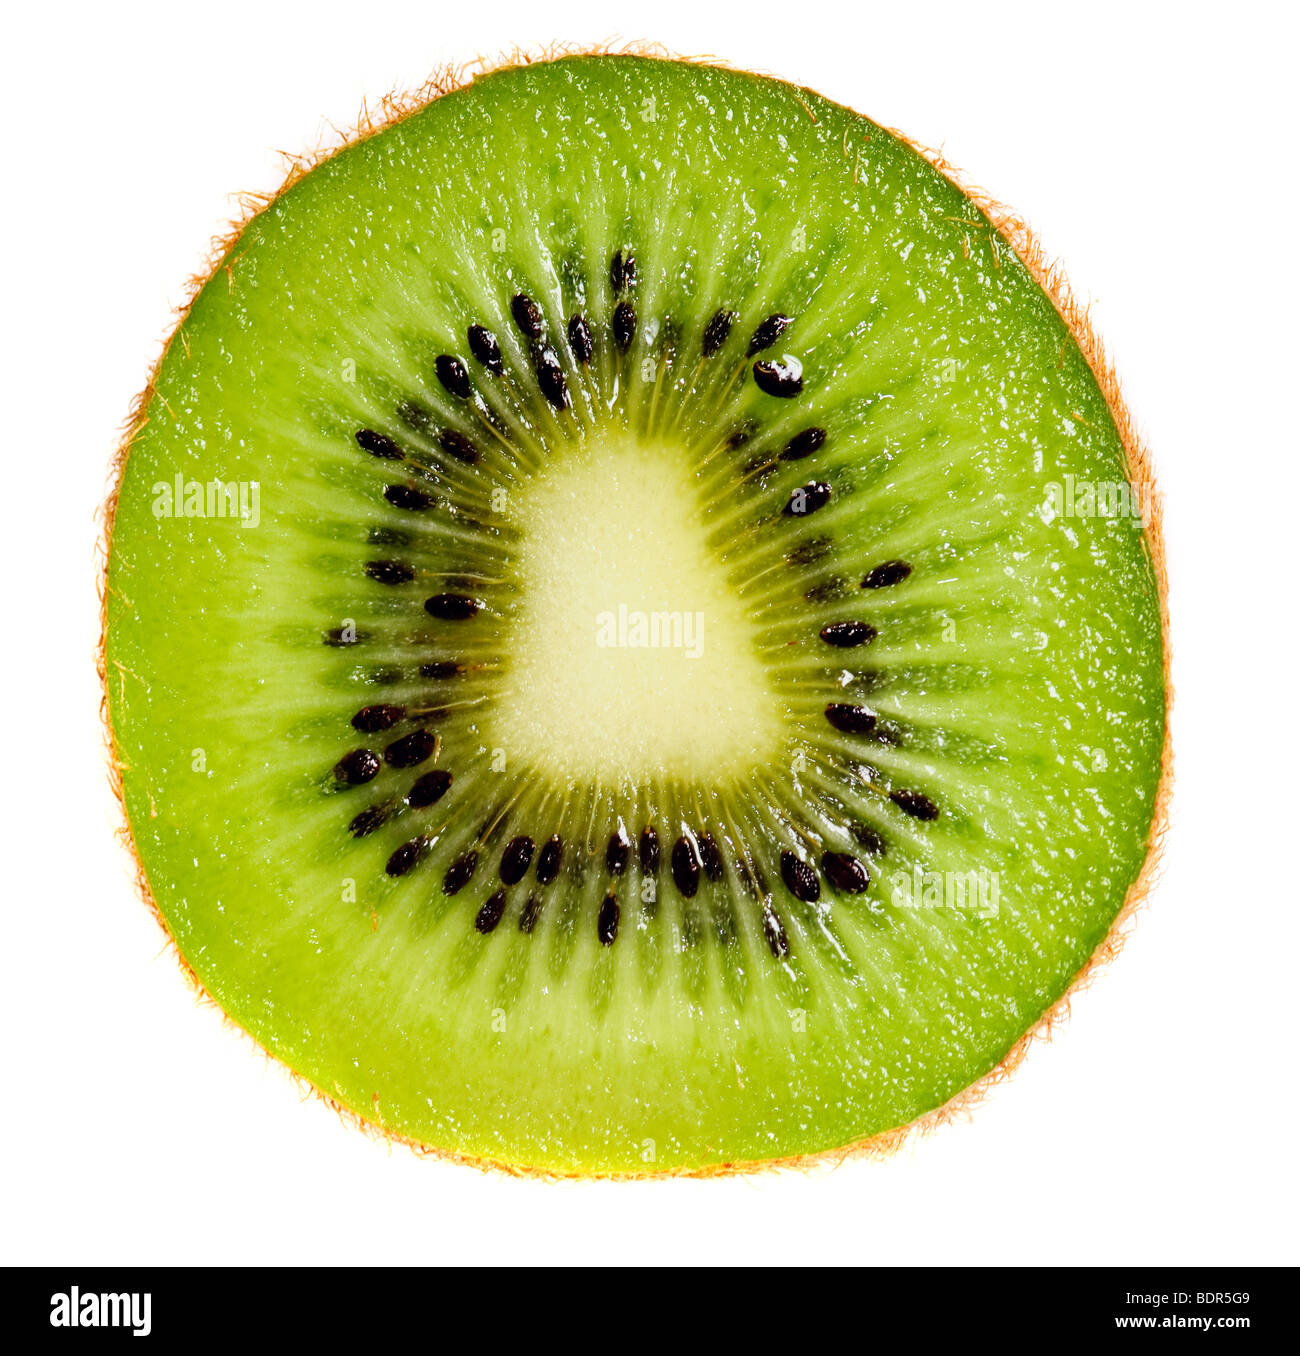 Close up of kiwi slice isolated over white background Stock Photo